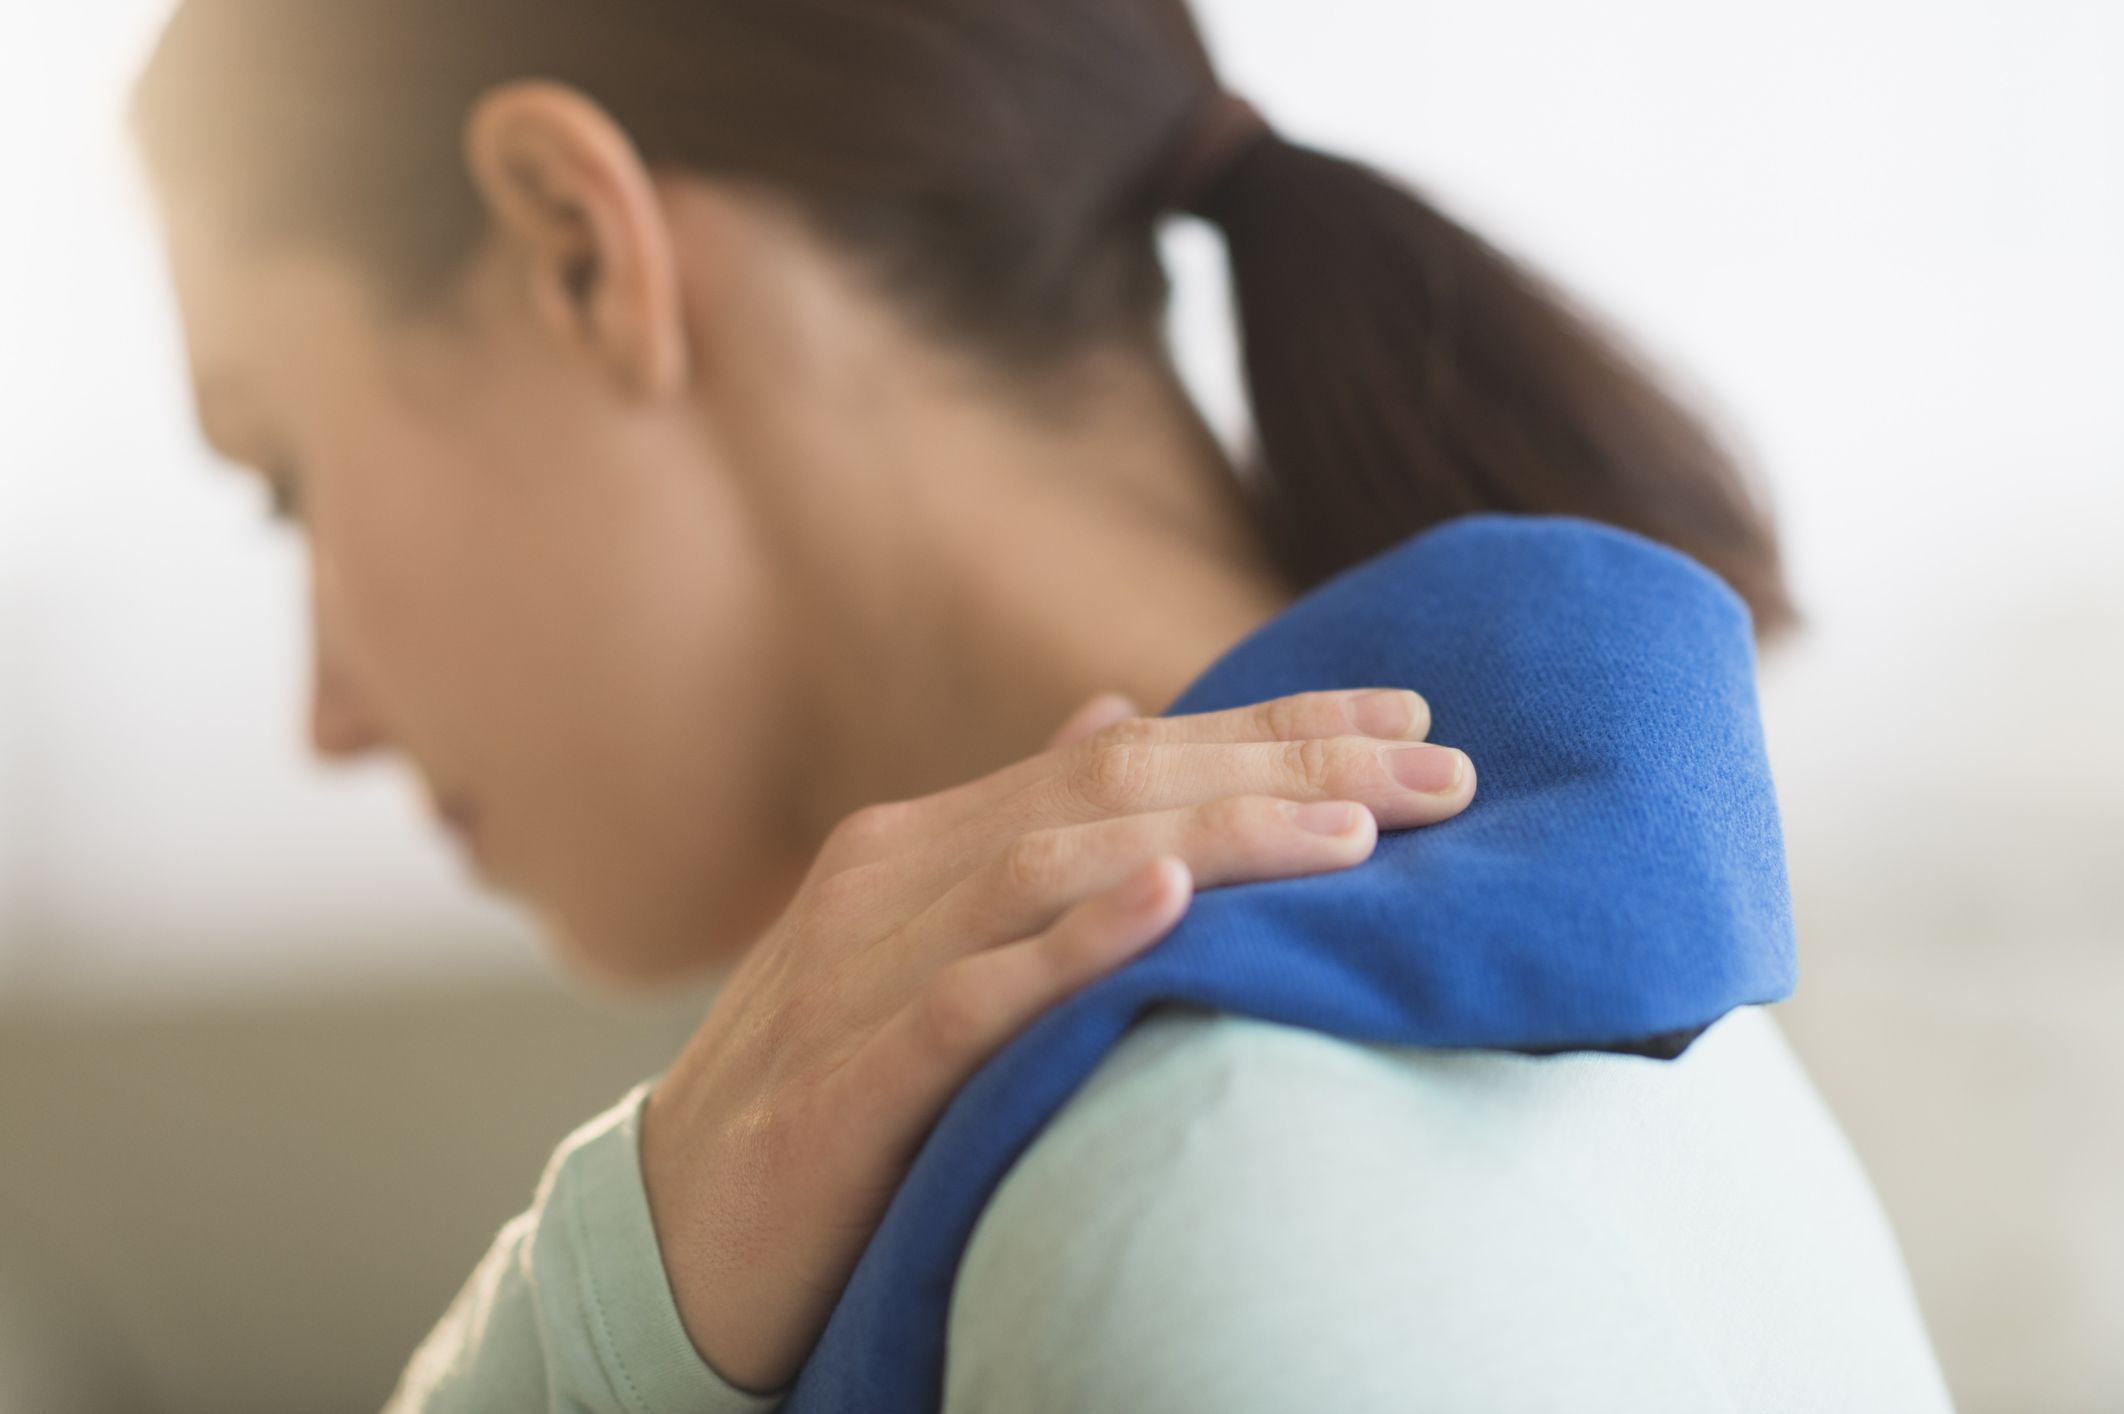 Close-up of a woman in pain holding her shoulder